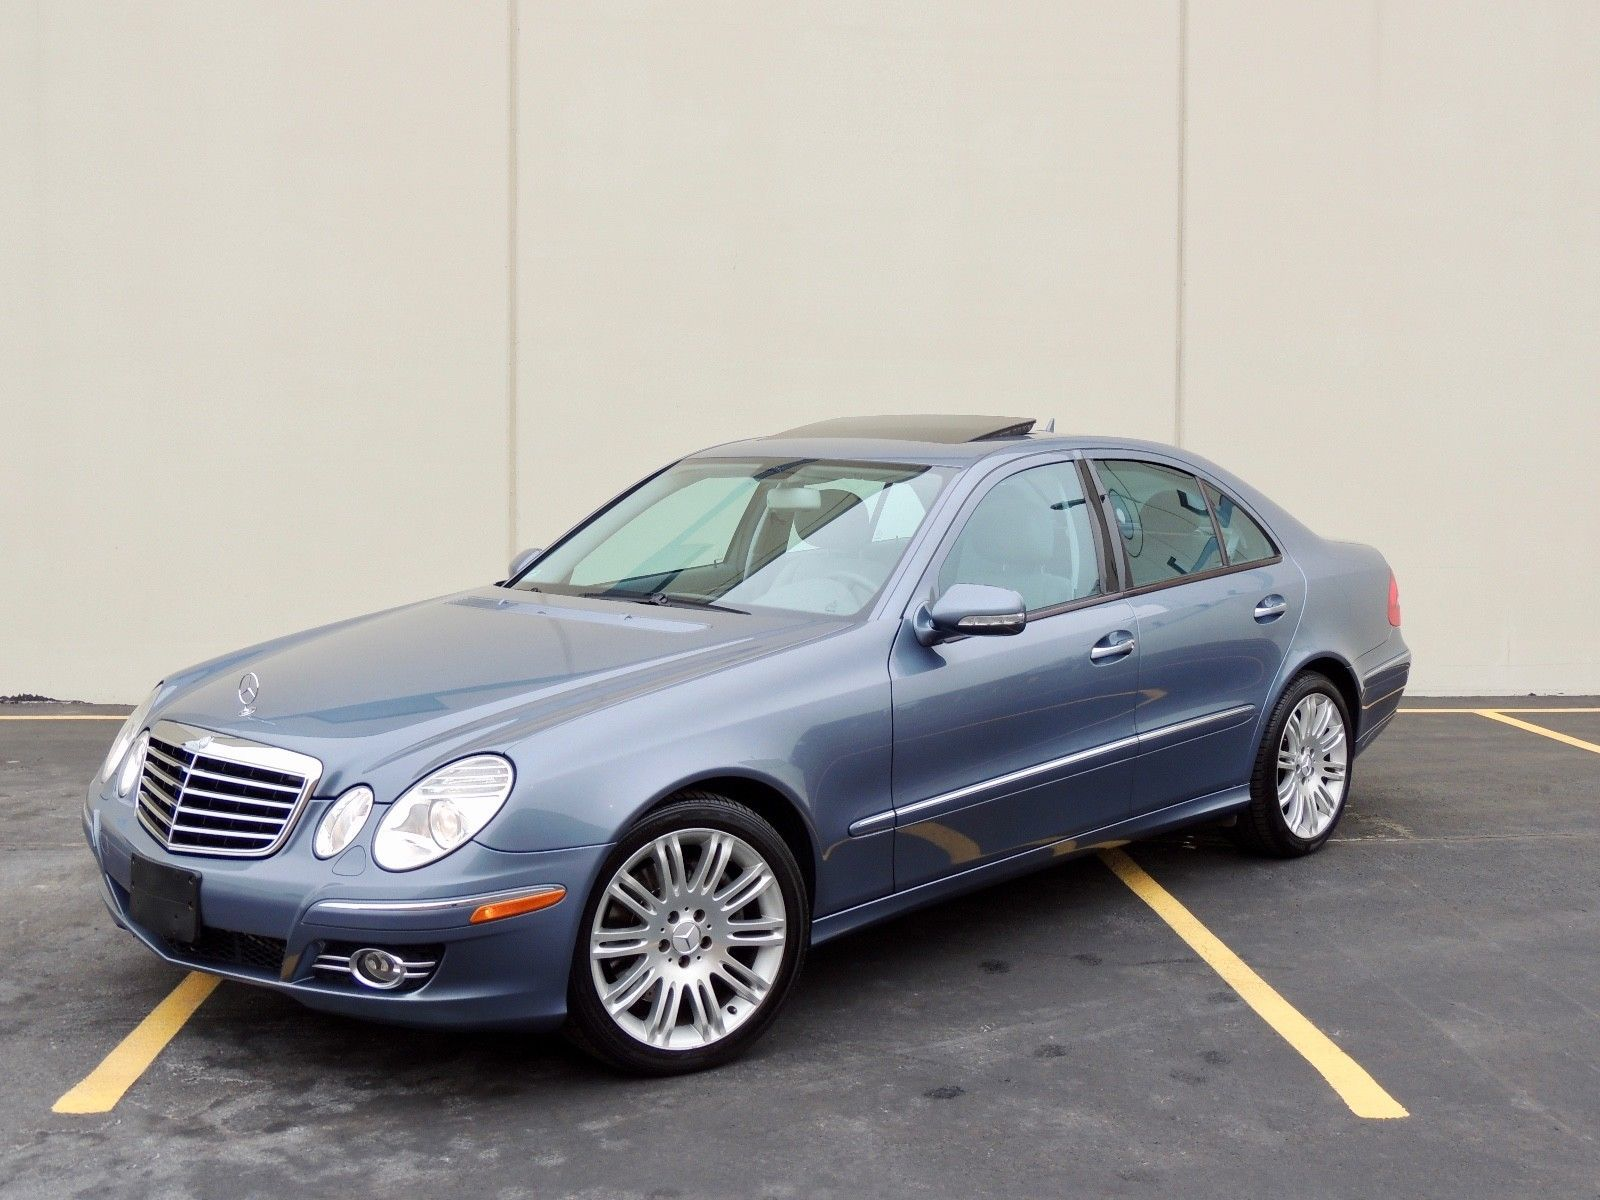 2009 Mercedes E Class Amg Lowered On 20s Preview Mercedes E55